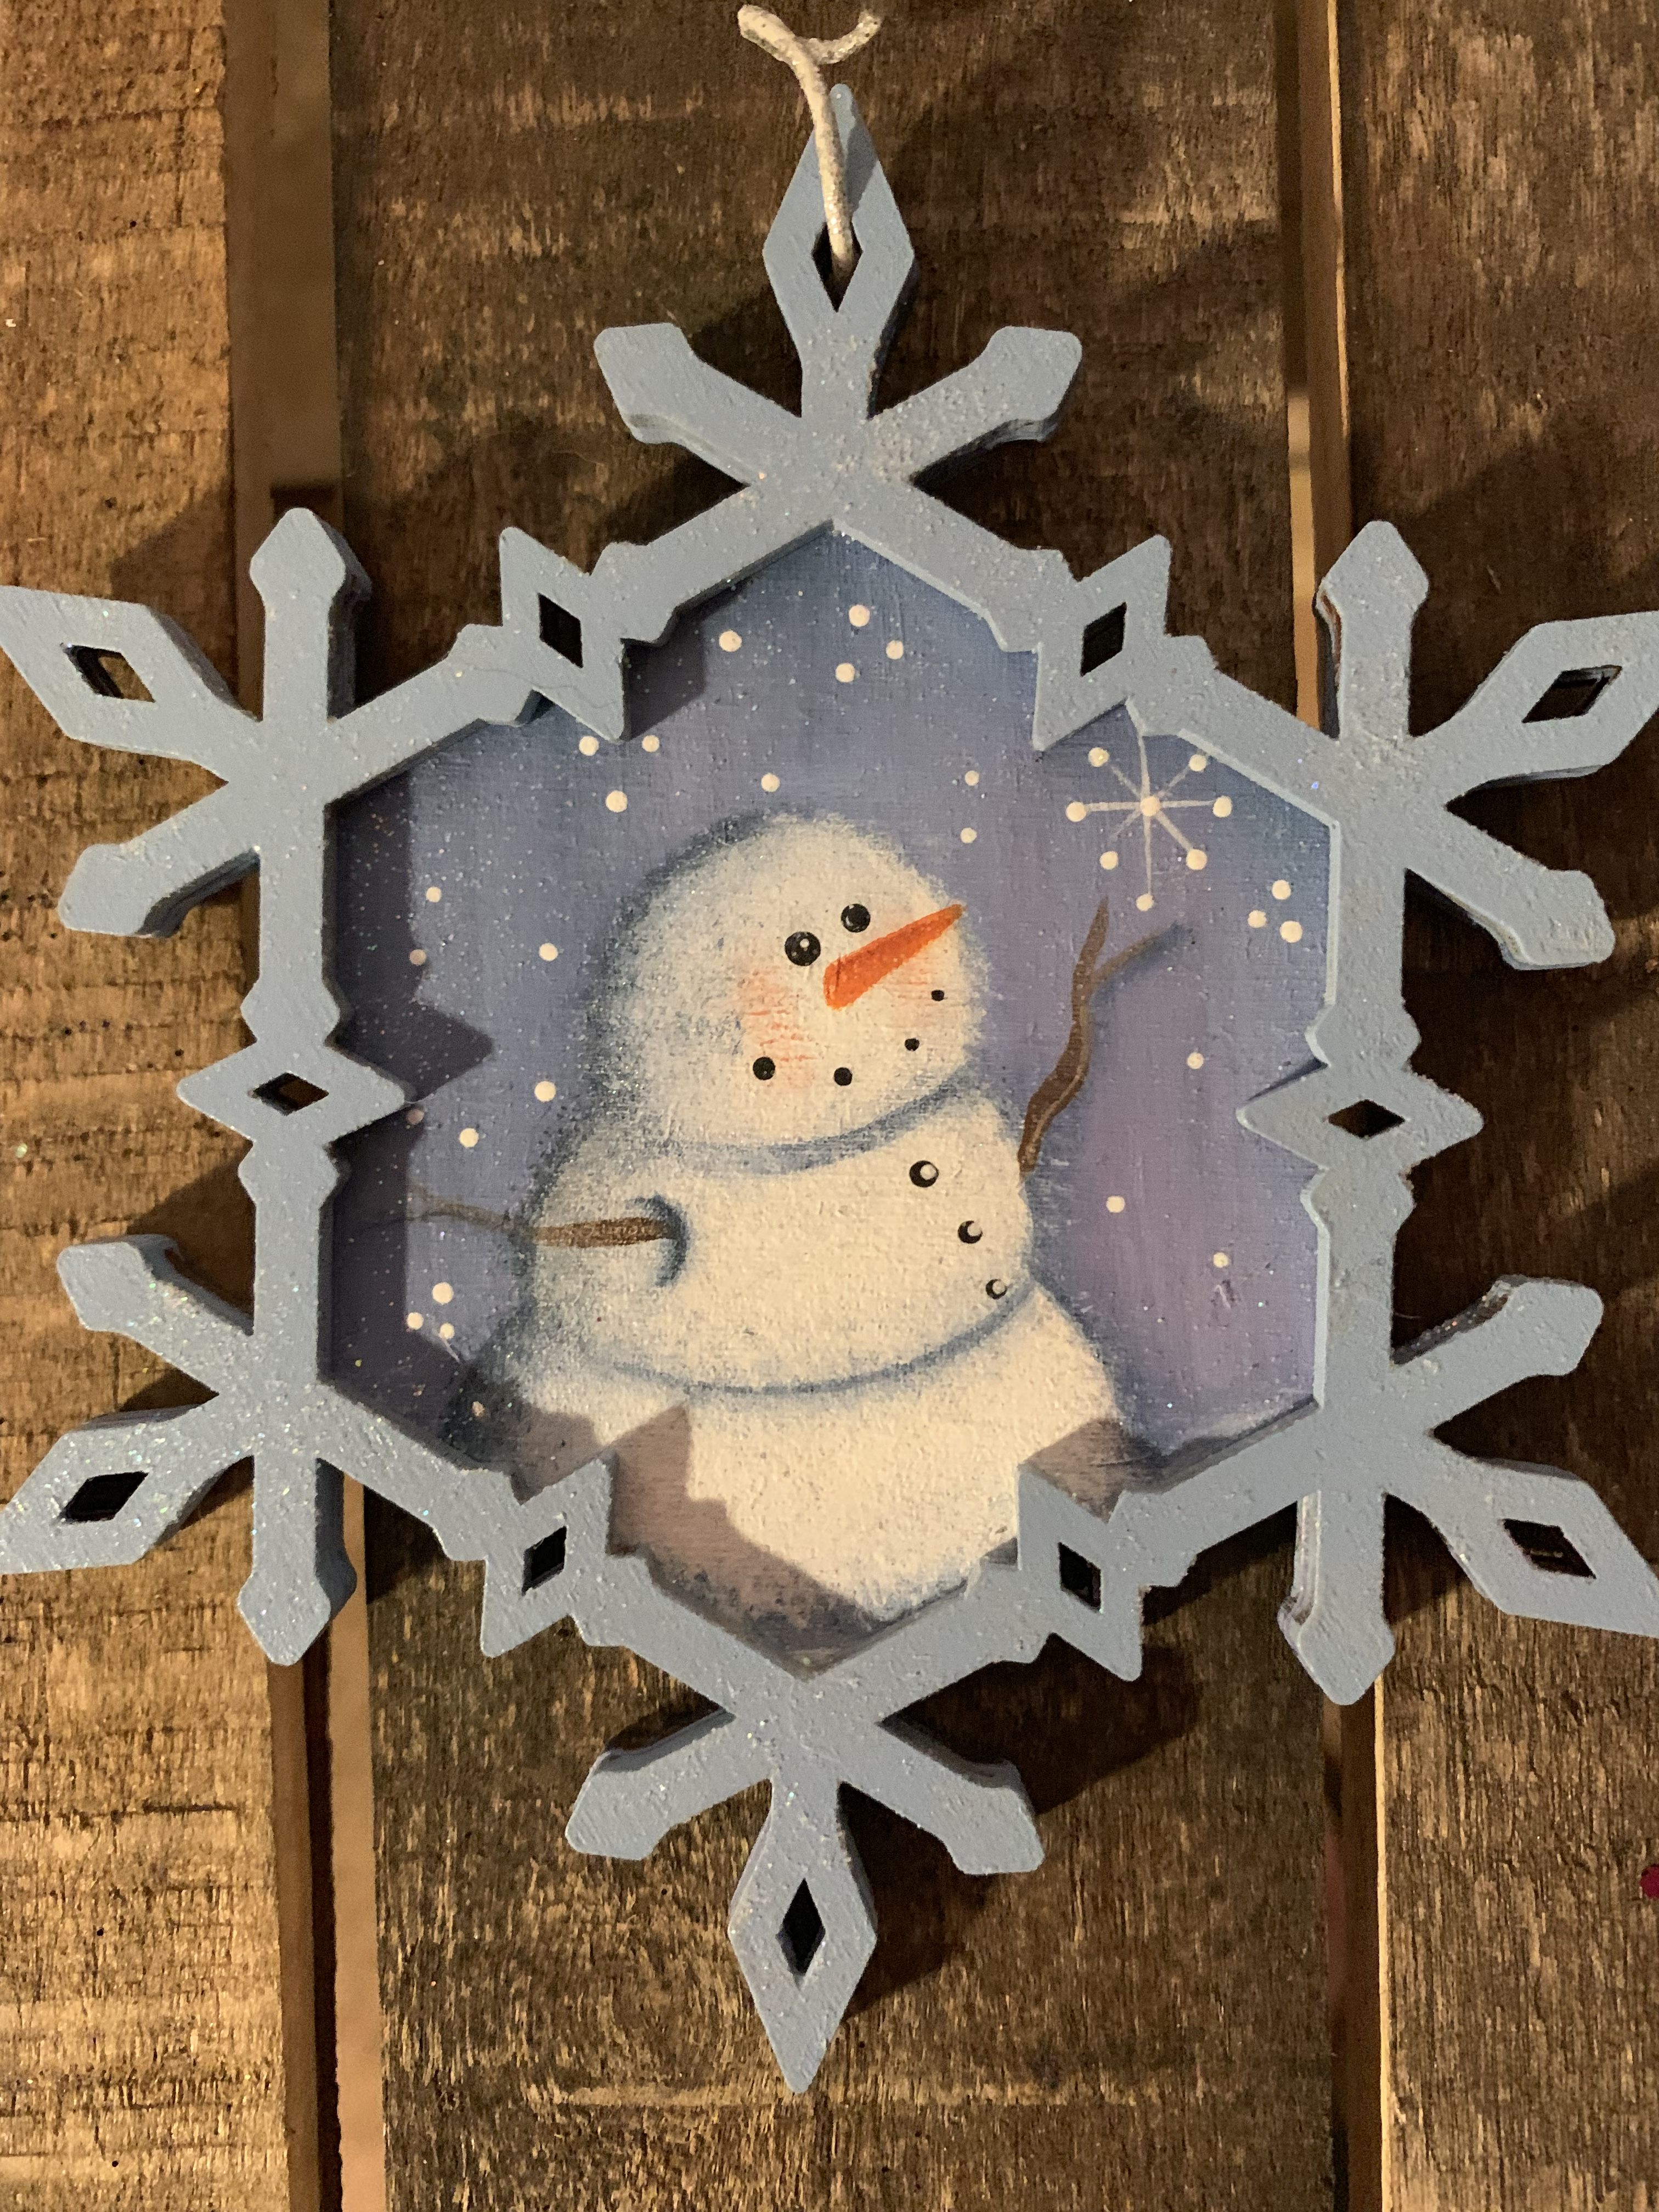 Hand Painted Snowman Snowflake Ornament Etsy Snowman Painting Snowflake Ornaments Ornaments